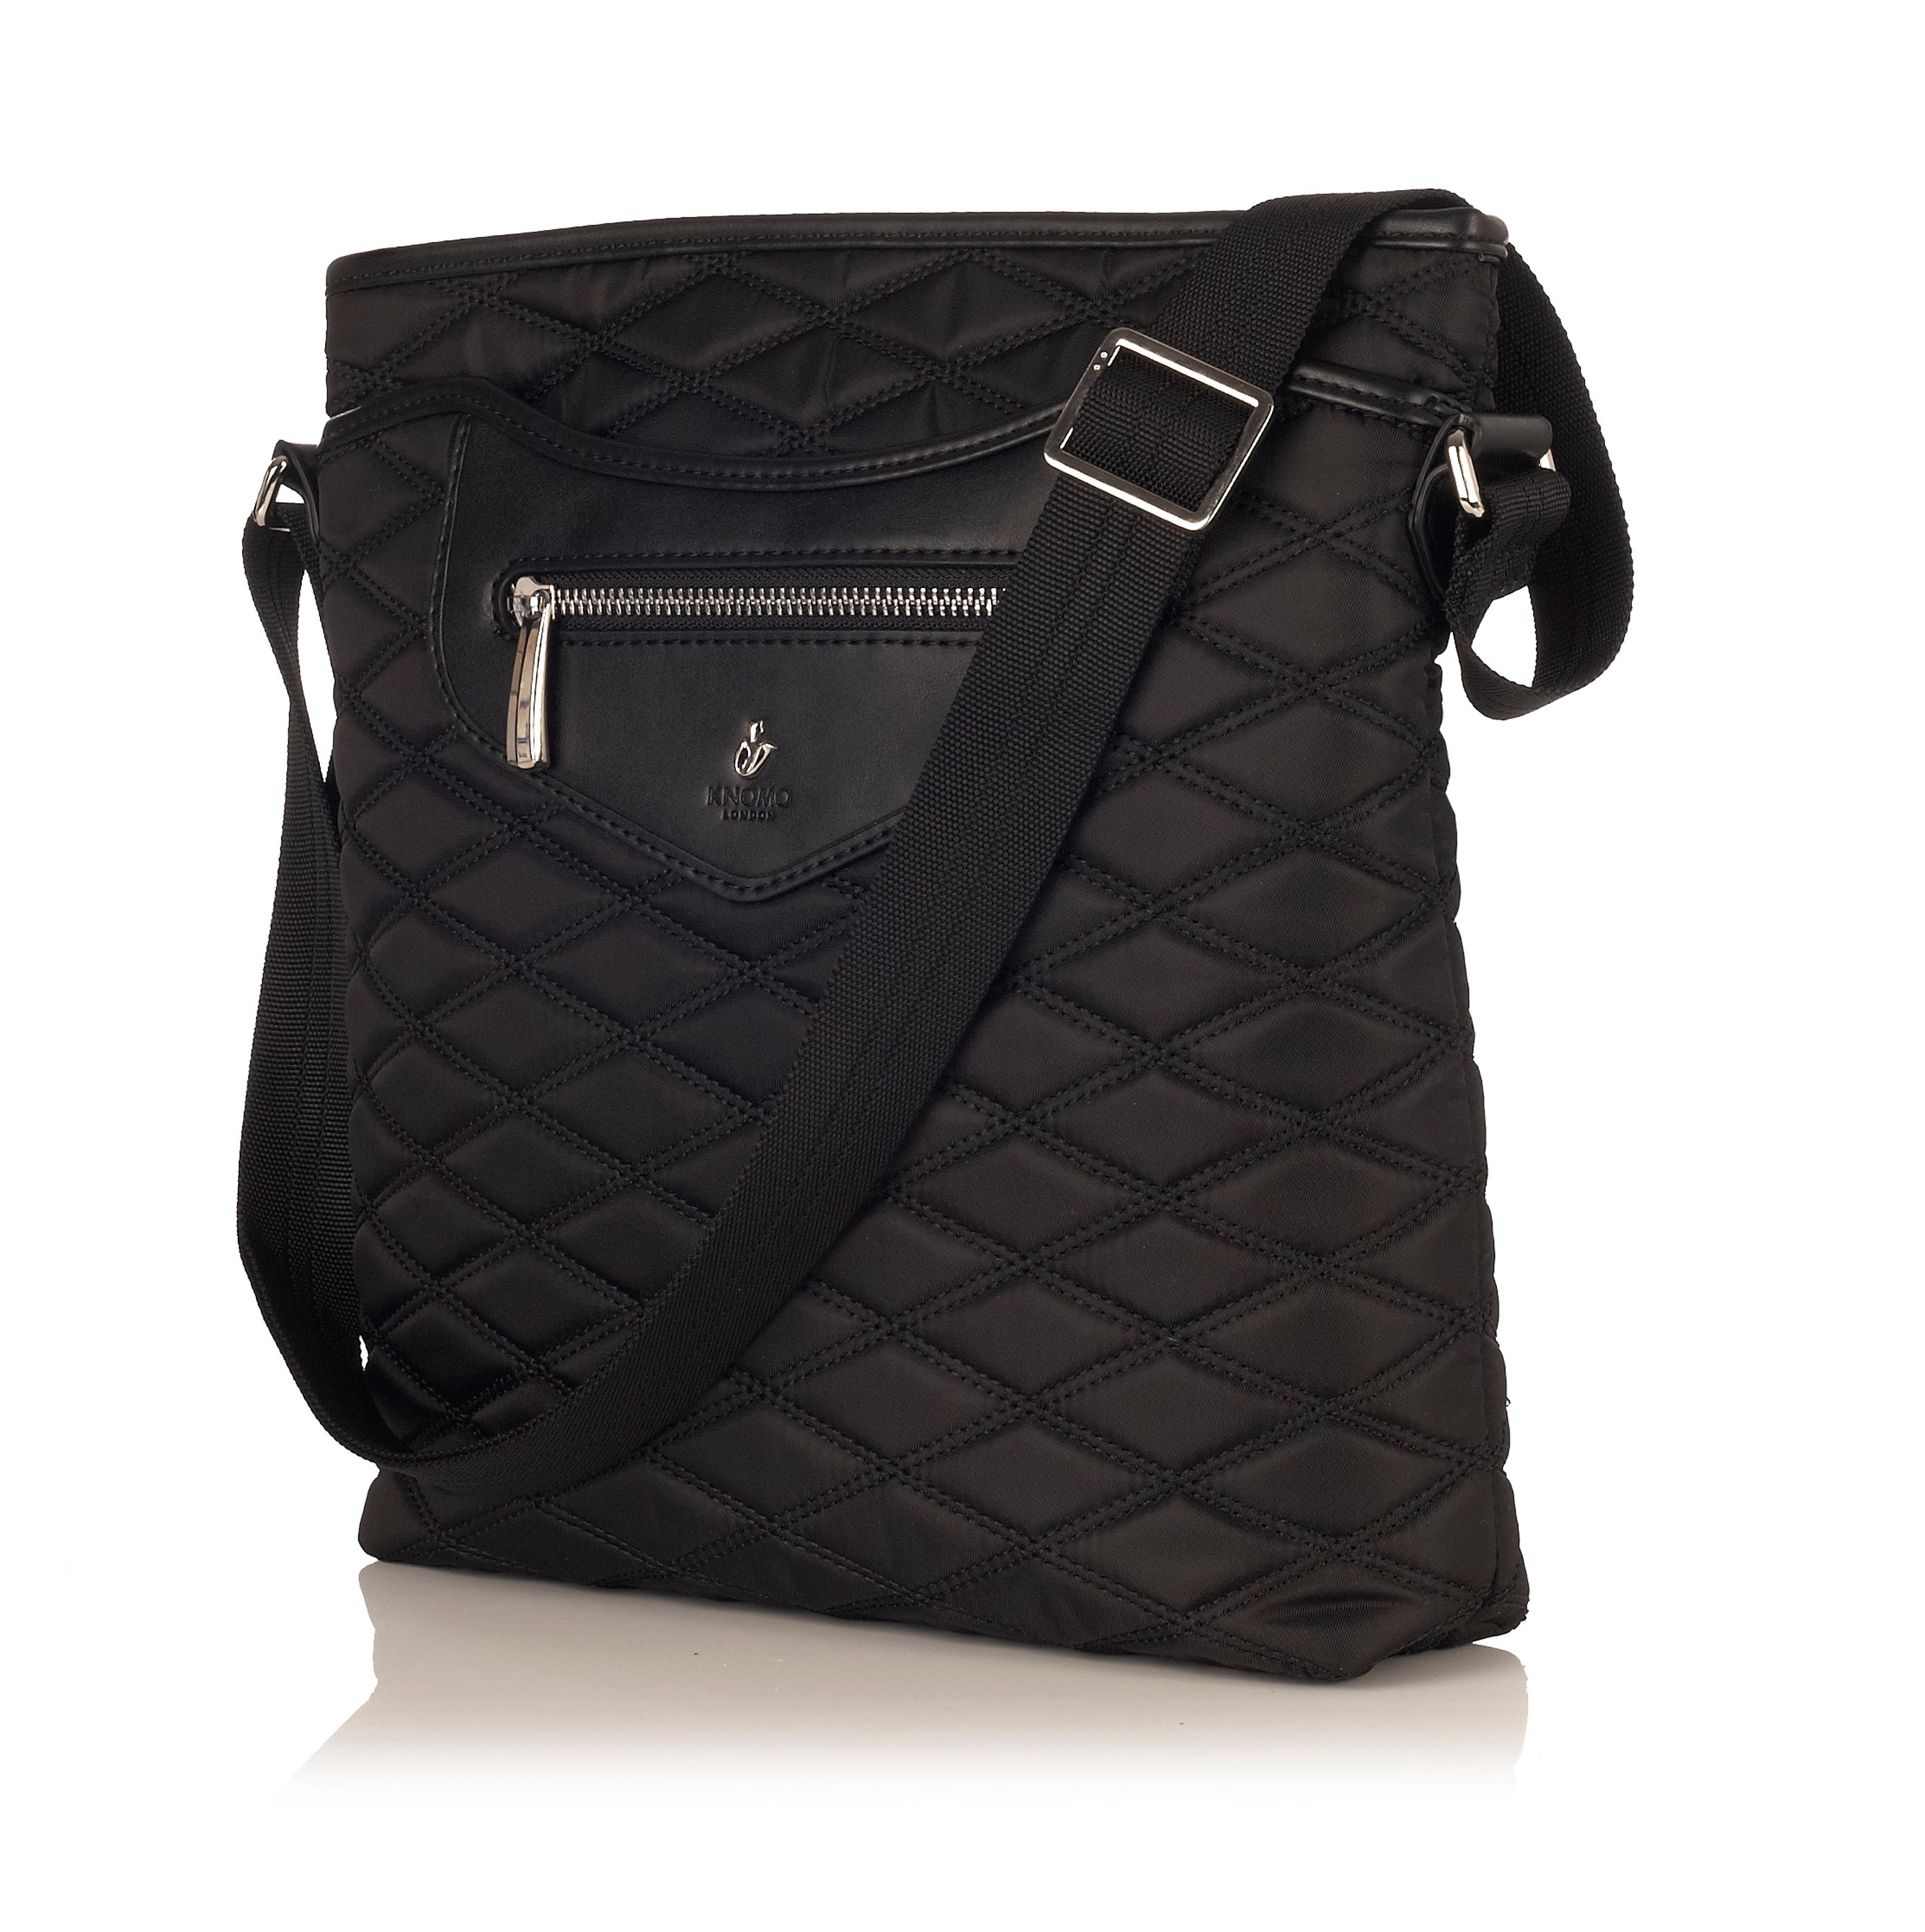 Maple black cross body bag